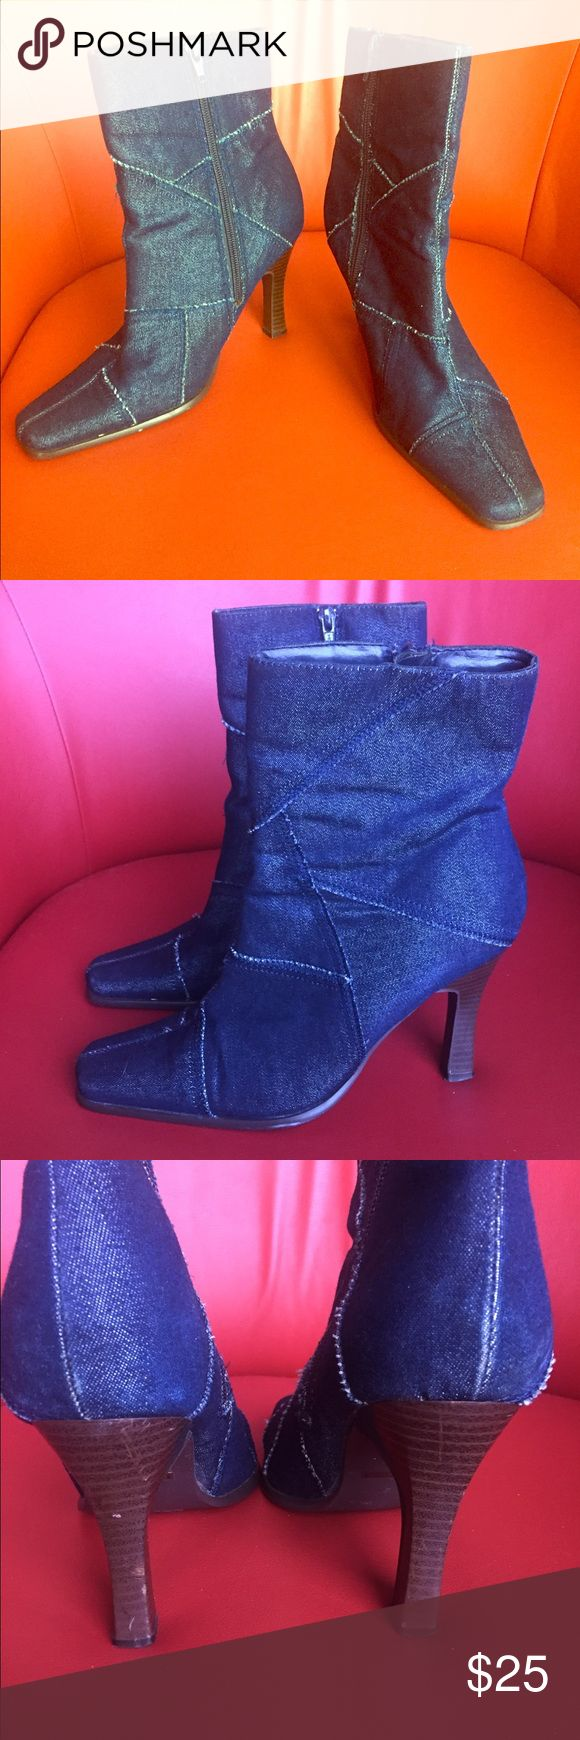 """Adorable Denim Zip Up Boots in a Size 8.5, Comfy This is an adorable pair of Bamboo, denim boots in a size 8 1/2. These boots are in excellent condition with just a couple of scratches on the left heel, as shown in the photo. These boots have a 3"""" heel, which make them super comfortable. Bamboo Shoes Heeled Boots"""